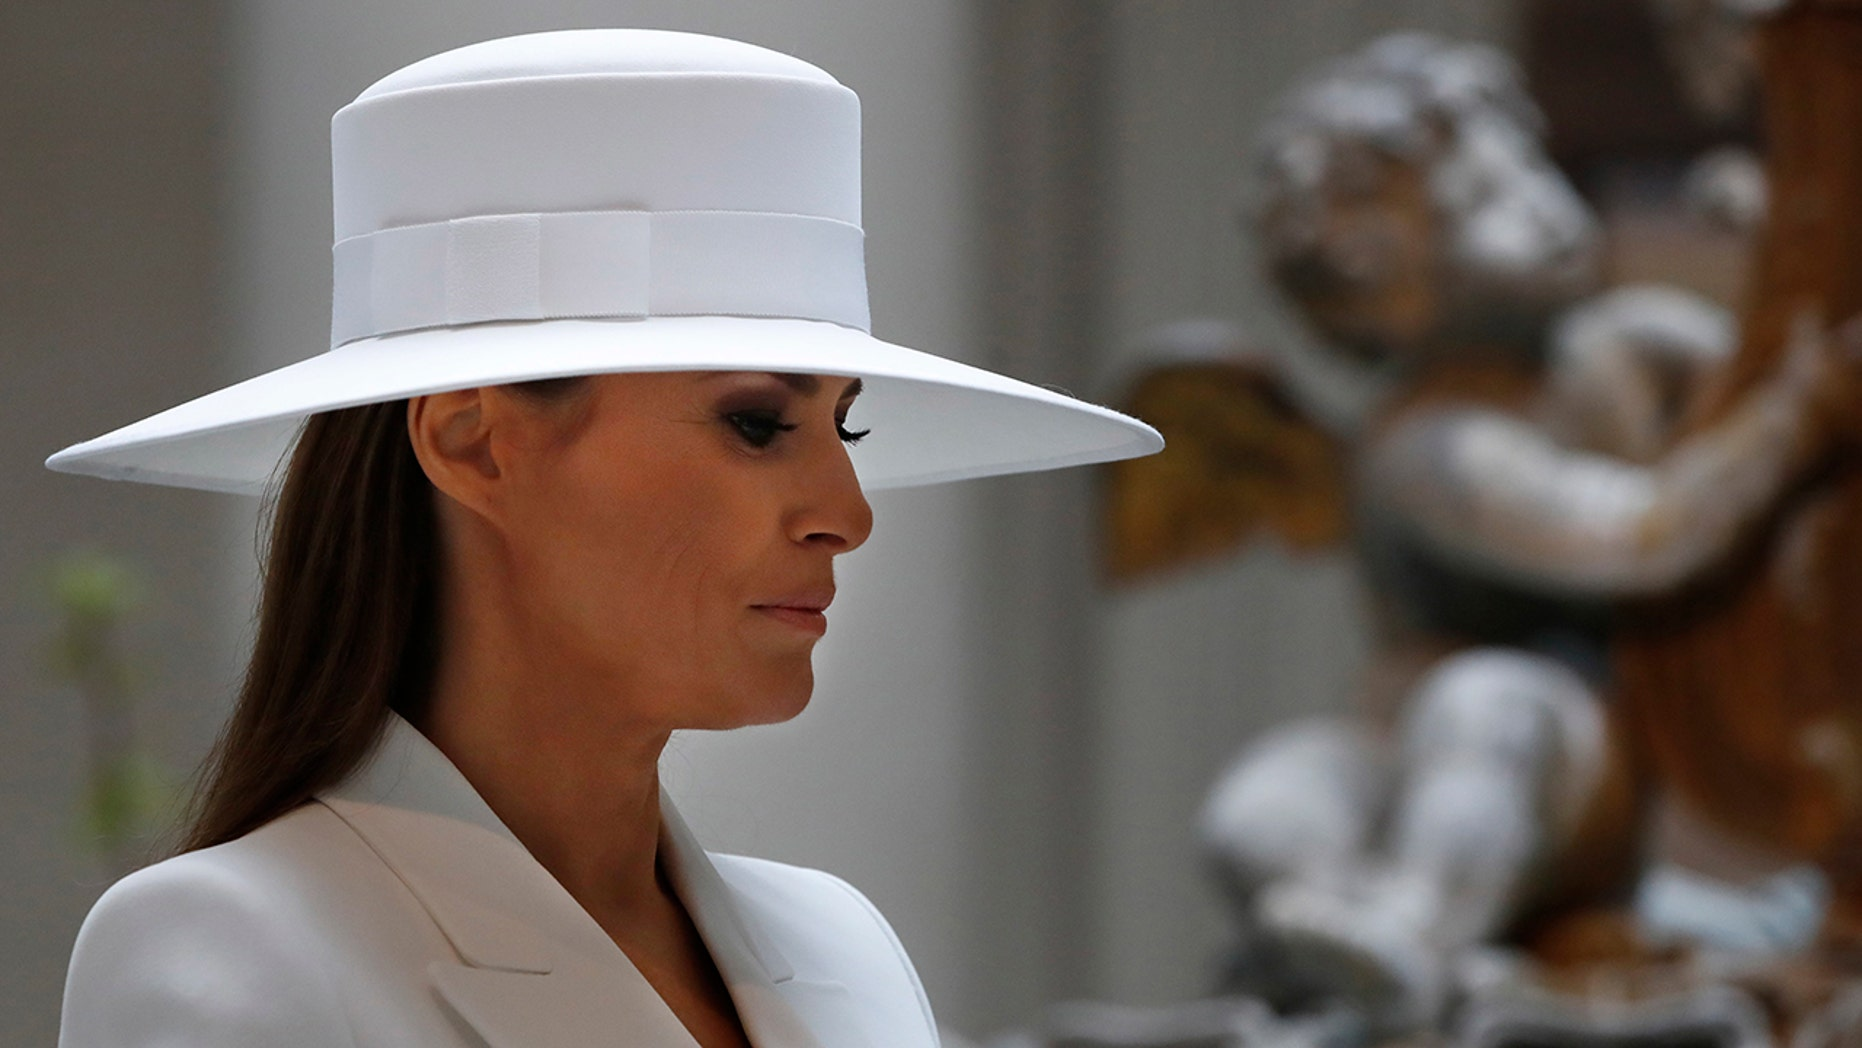 First lady Melania Trump tours the National Gallery of Art on April 24 in Washington, D.C.